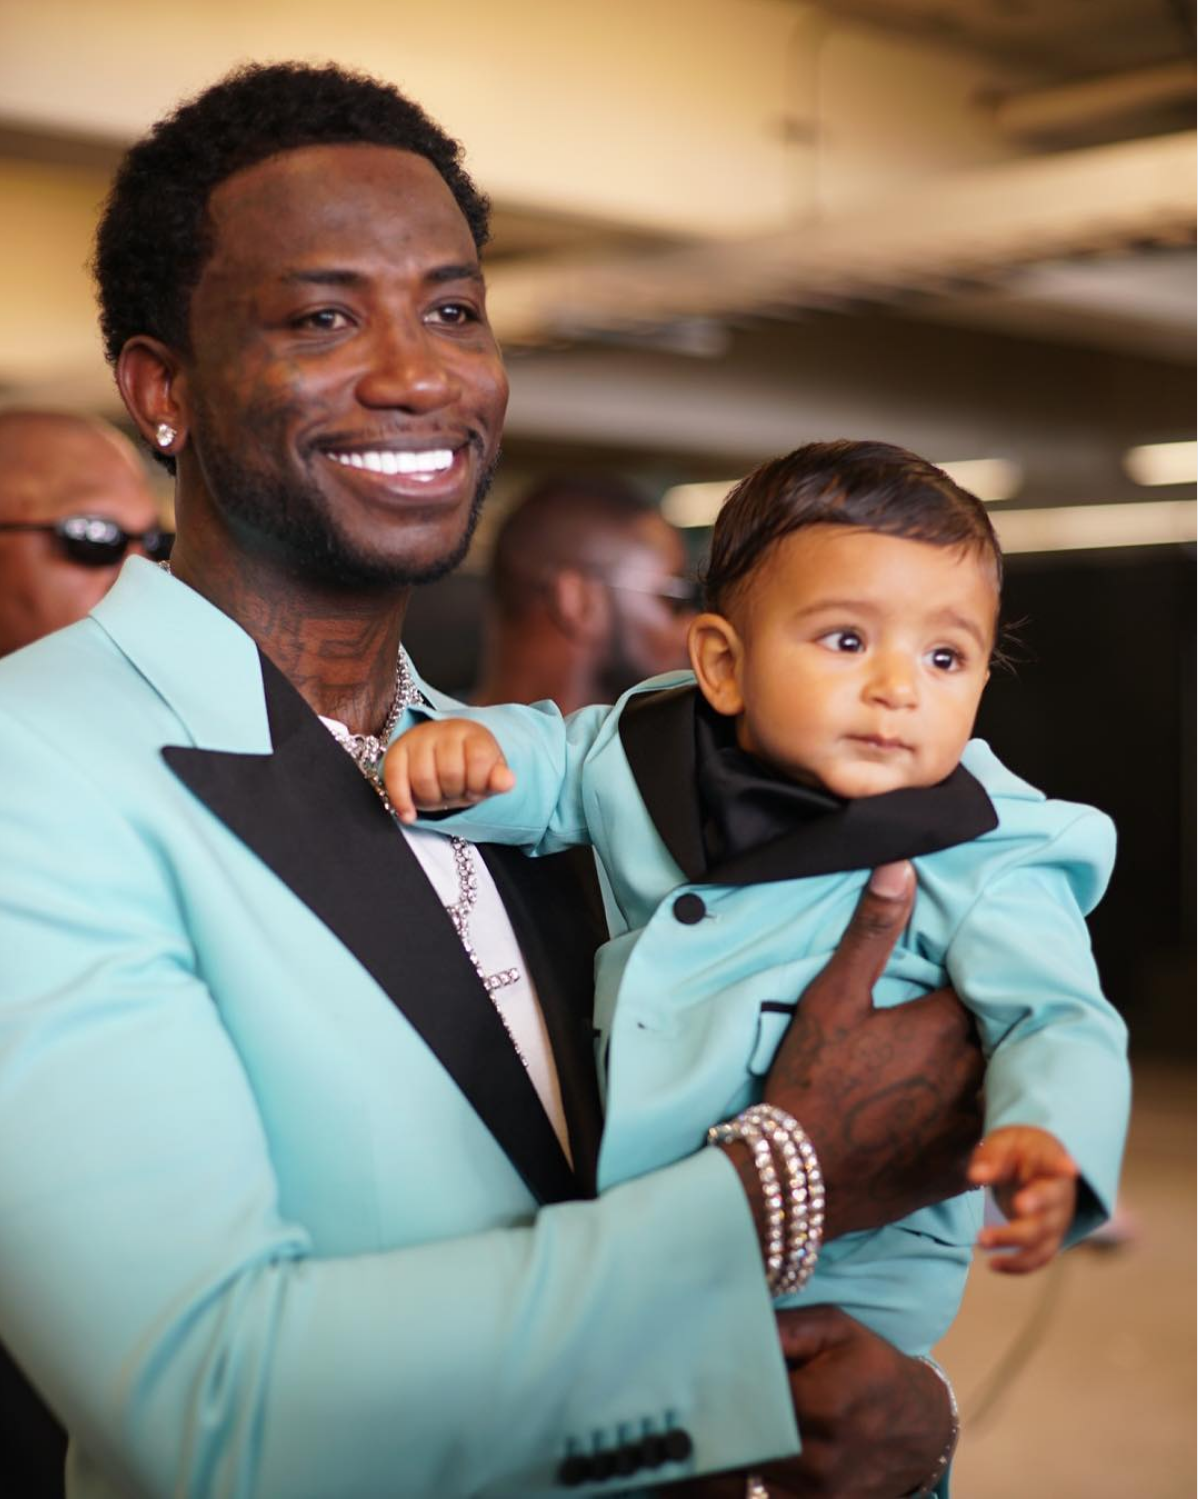 Gucci Mane and Asahd Khaled Wear Matching Tuxedos to BET Awards- Essence